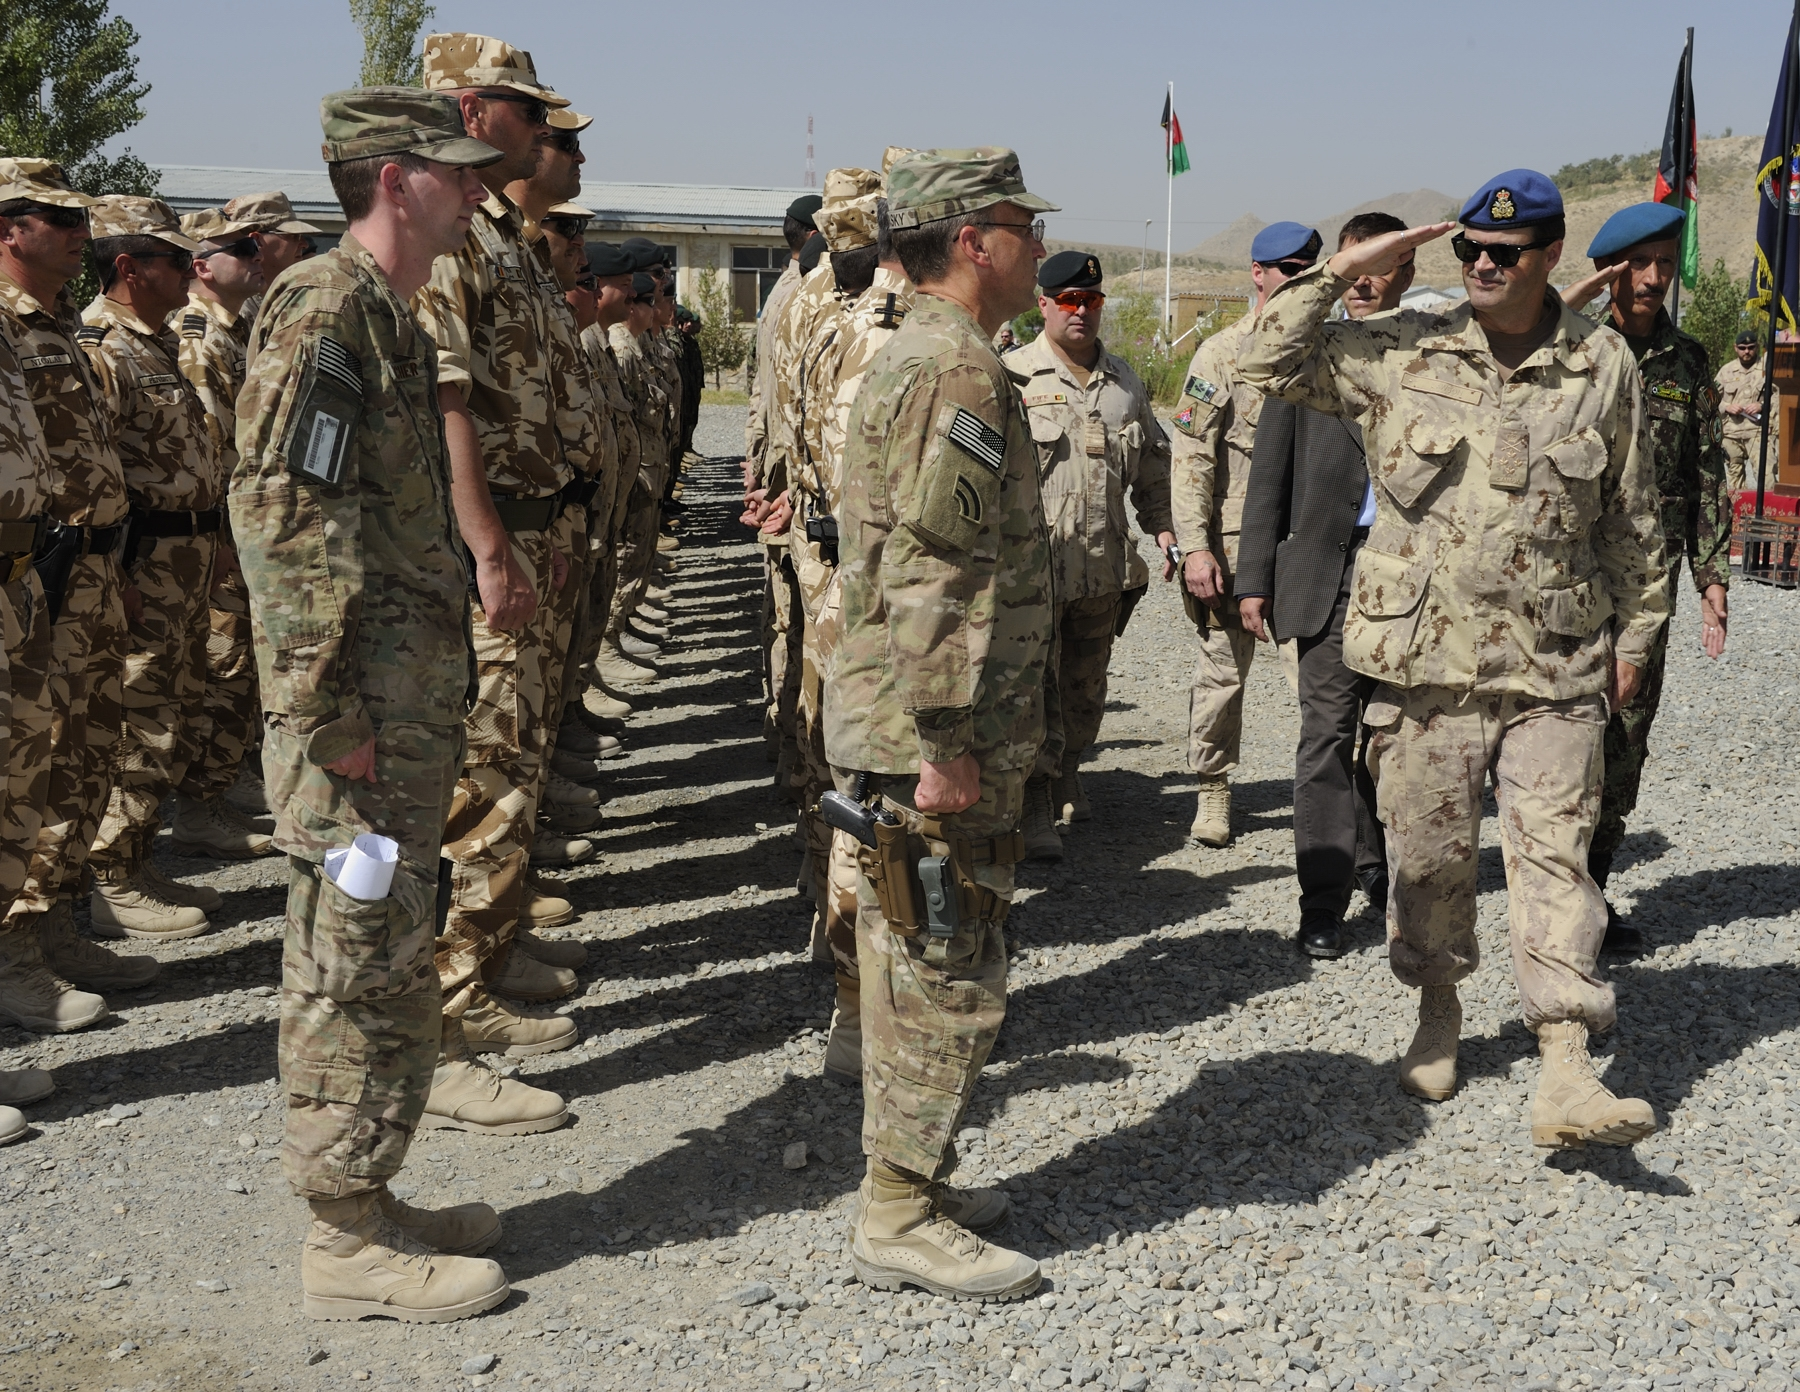 Lawson Afghanistan AT2013-0226-25.jpg